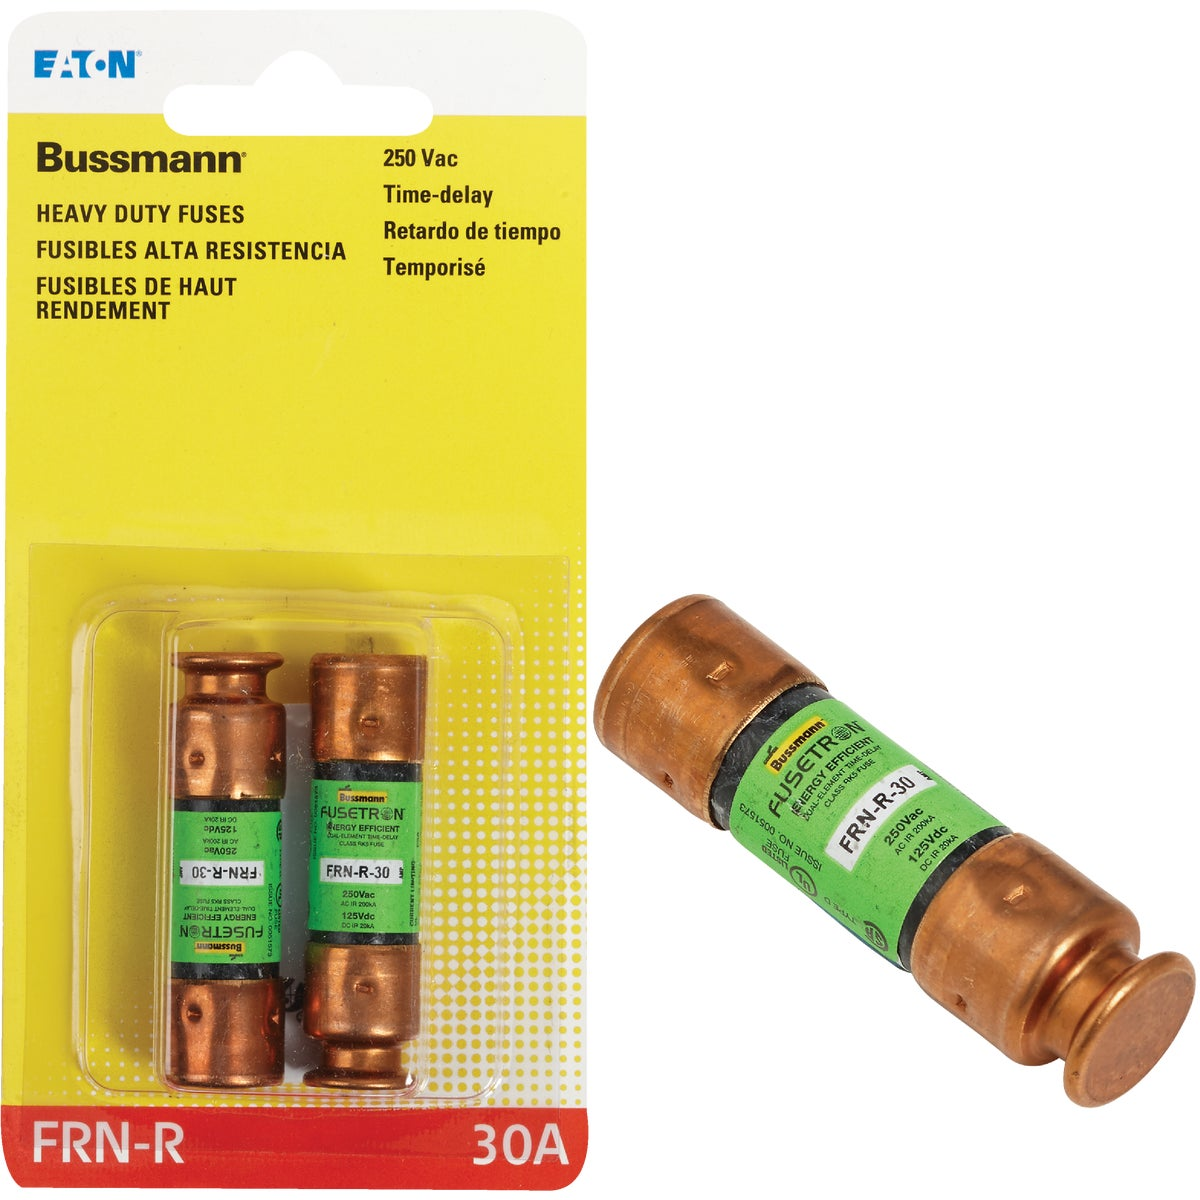 30A CARTRIDGE FUSE - BP/FRN-R-30 by Bussmann Cooper